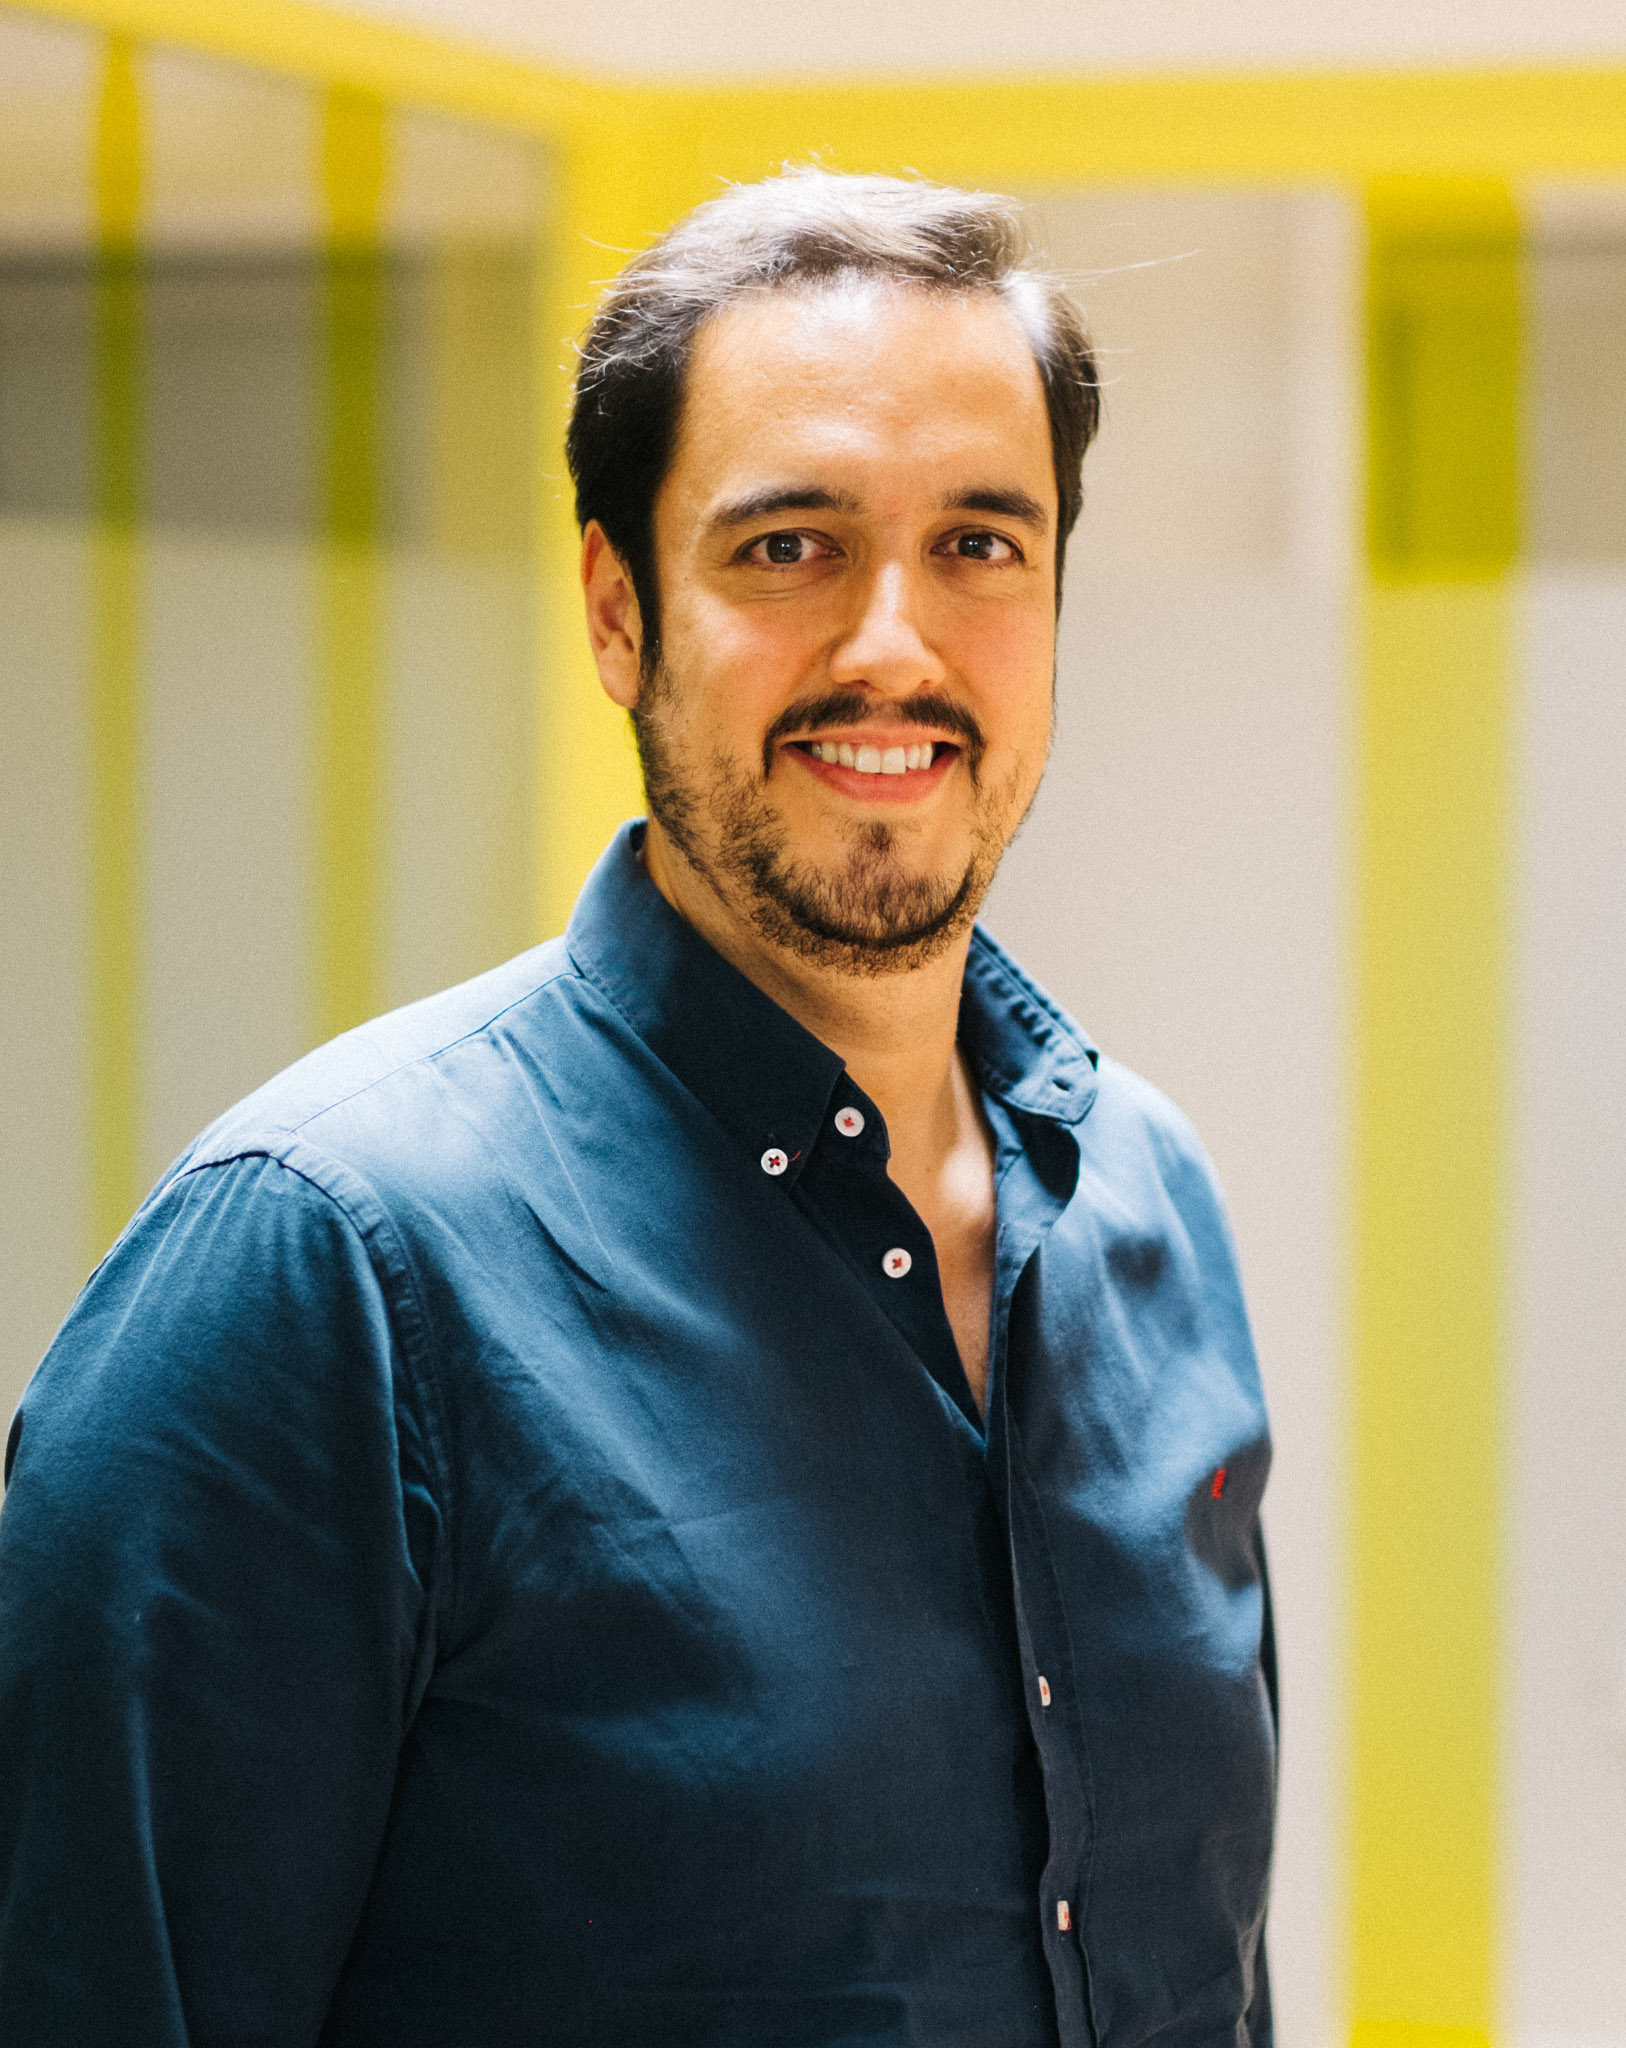 Juan Teijeiro - before Bonsai Partners Juan & his partners have built some of the most recognized brands in online marketing, Founding companies such as T2o, JOT, Wink & iahorro. Juan has also invested in companies like glovo, wallapop, vice golf, be2/c-date and many others.